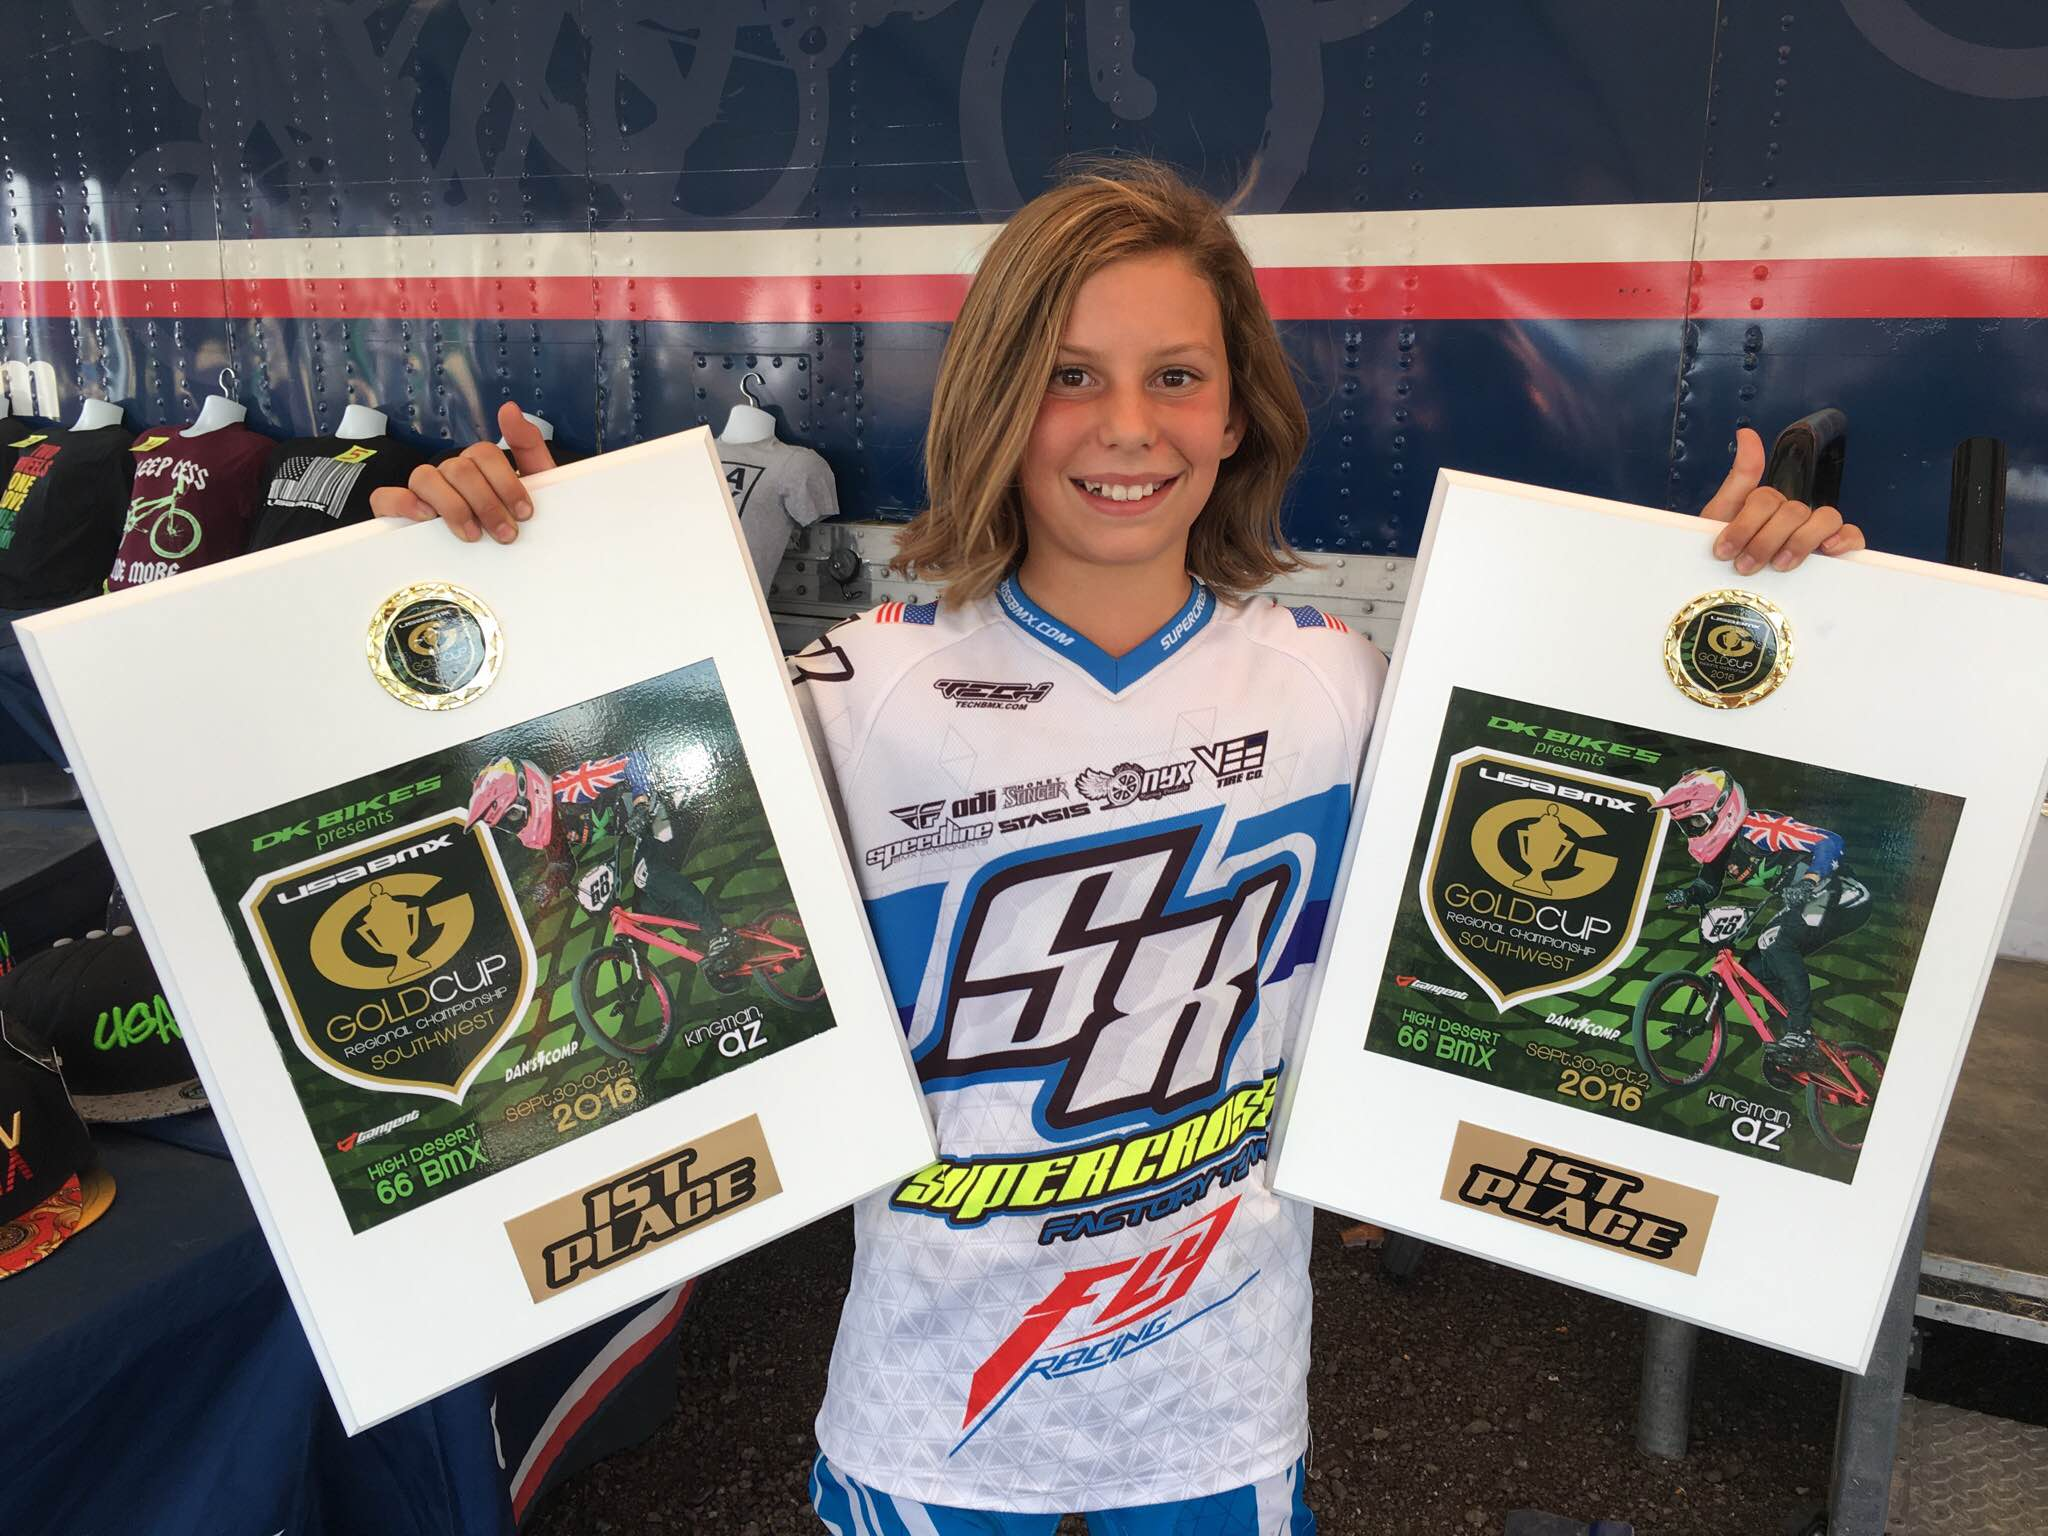 Bella Hammonds - Supercross BMX Factory Racer holding her USA BMX #1 Plaques